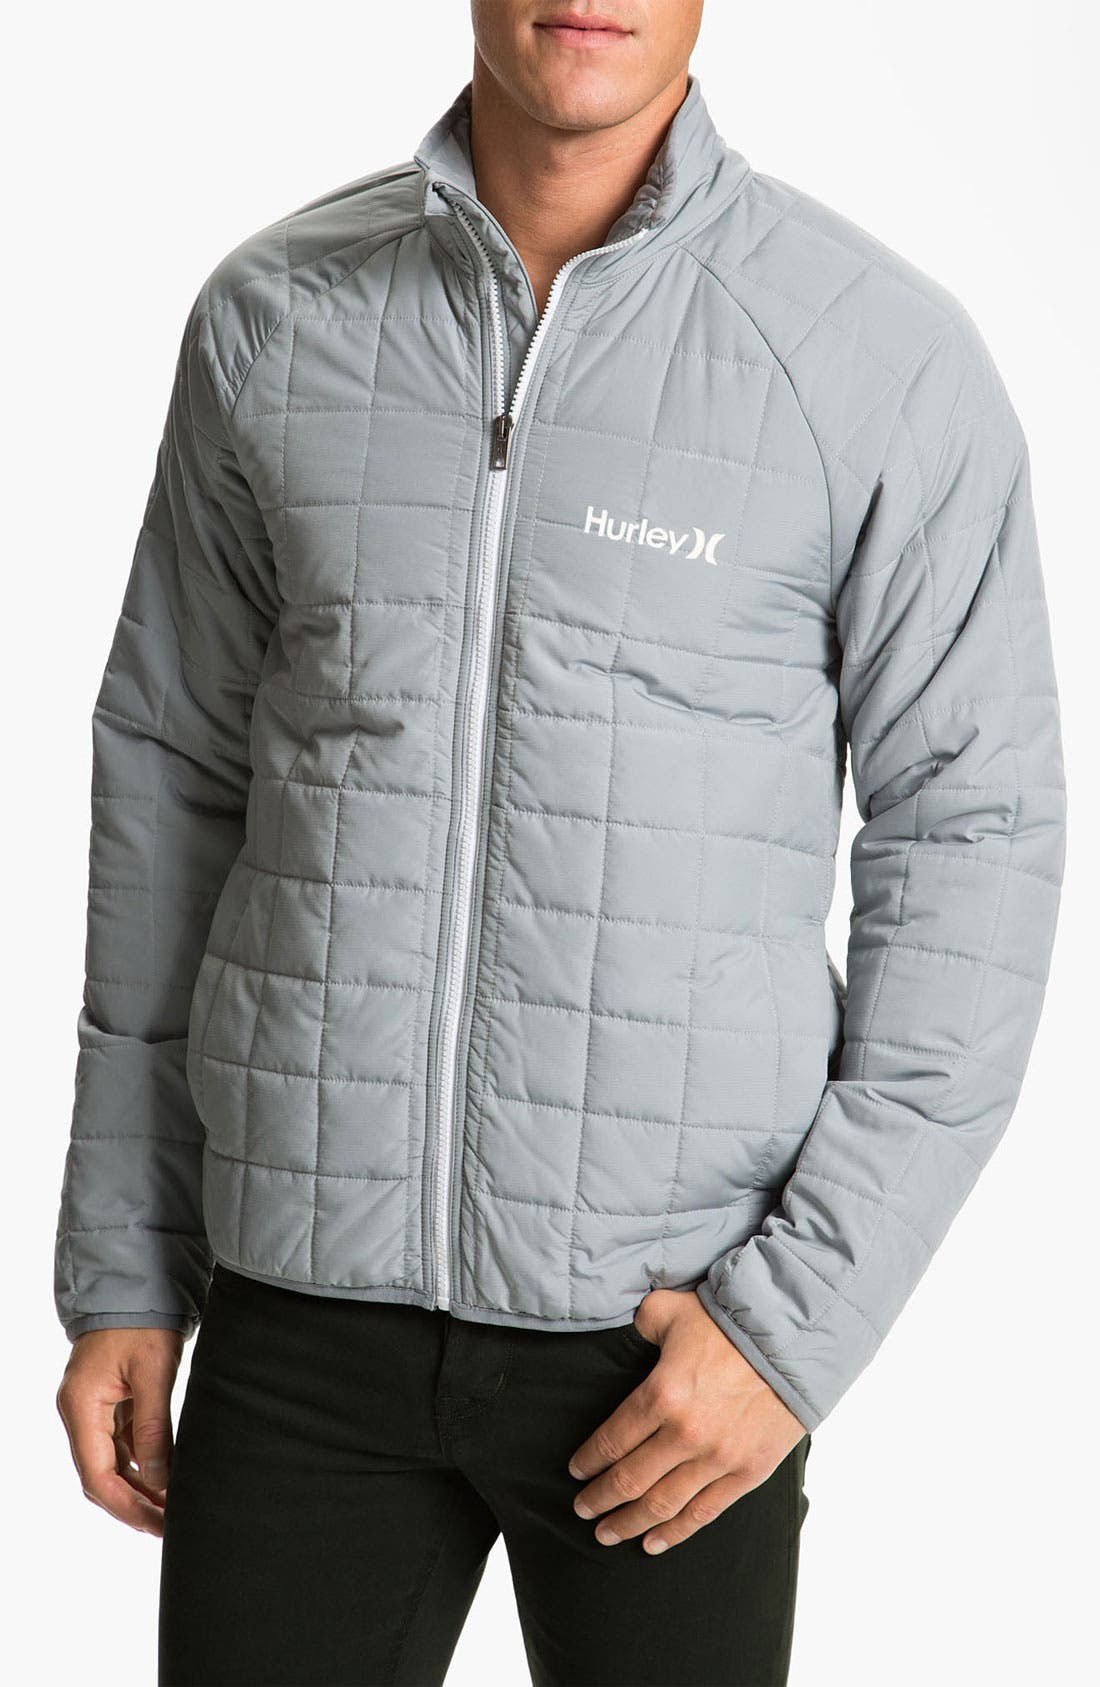 Alternate Image 1 Selected - Hurley 'Outer Edge' Jacket